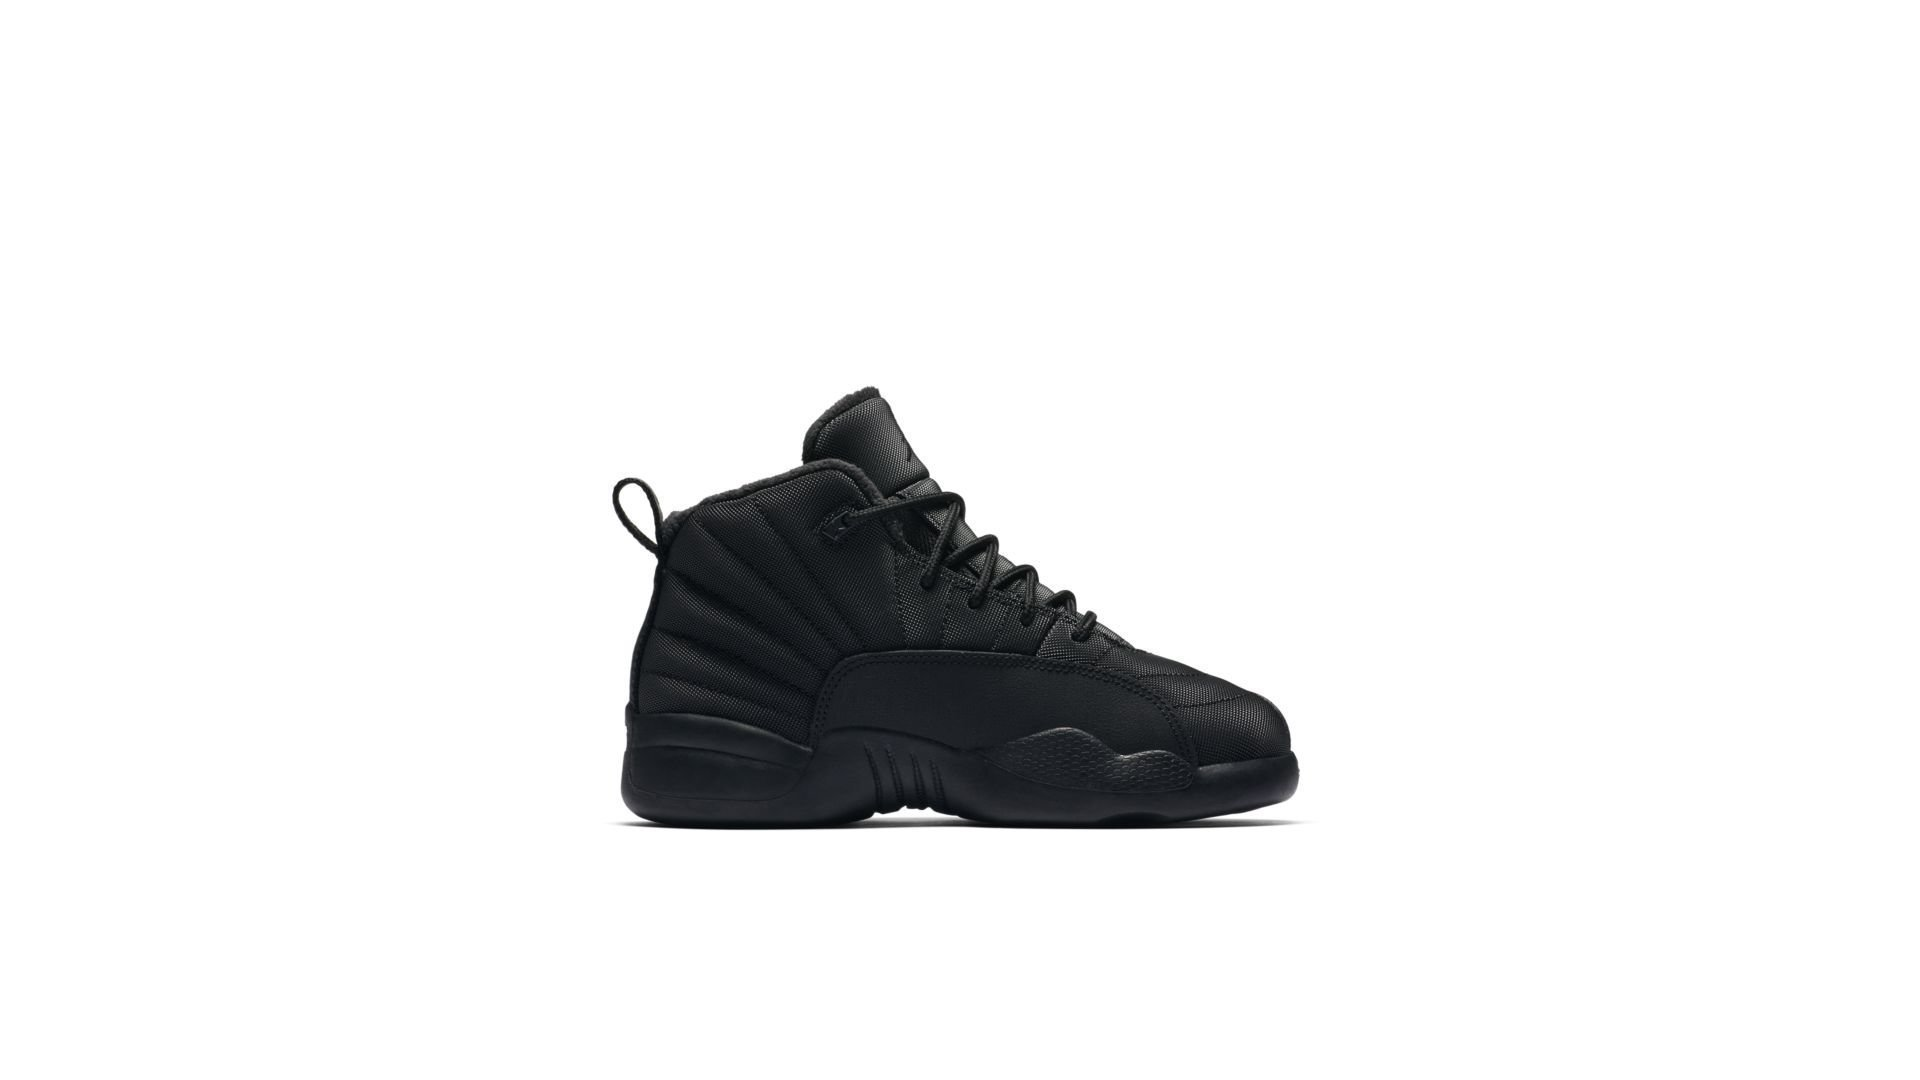 Jordan 12 Retro Winter Black (PS) (BQ6850-001)